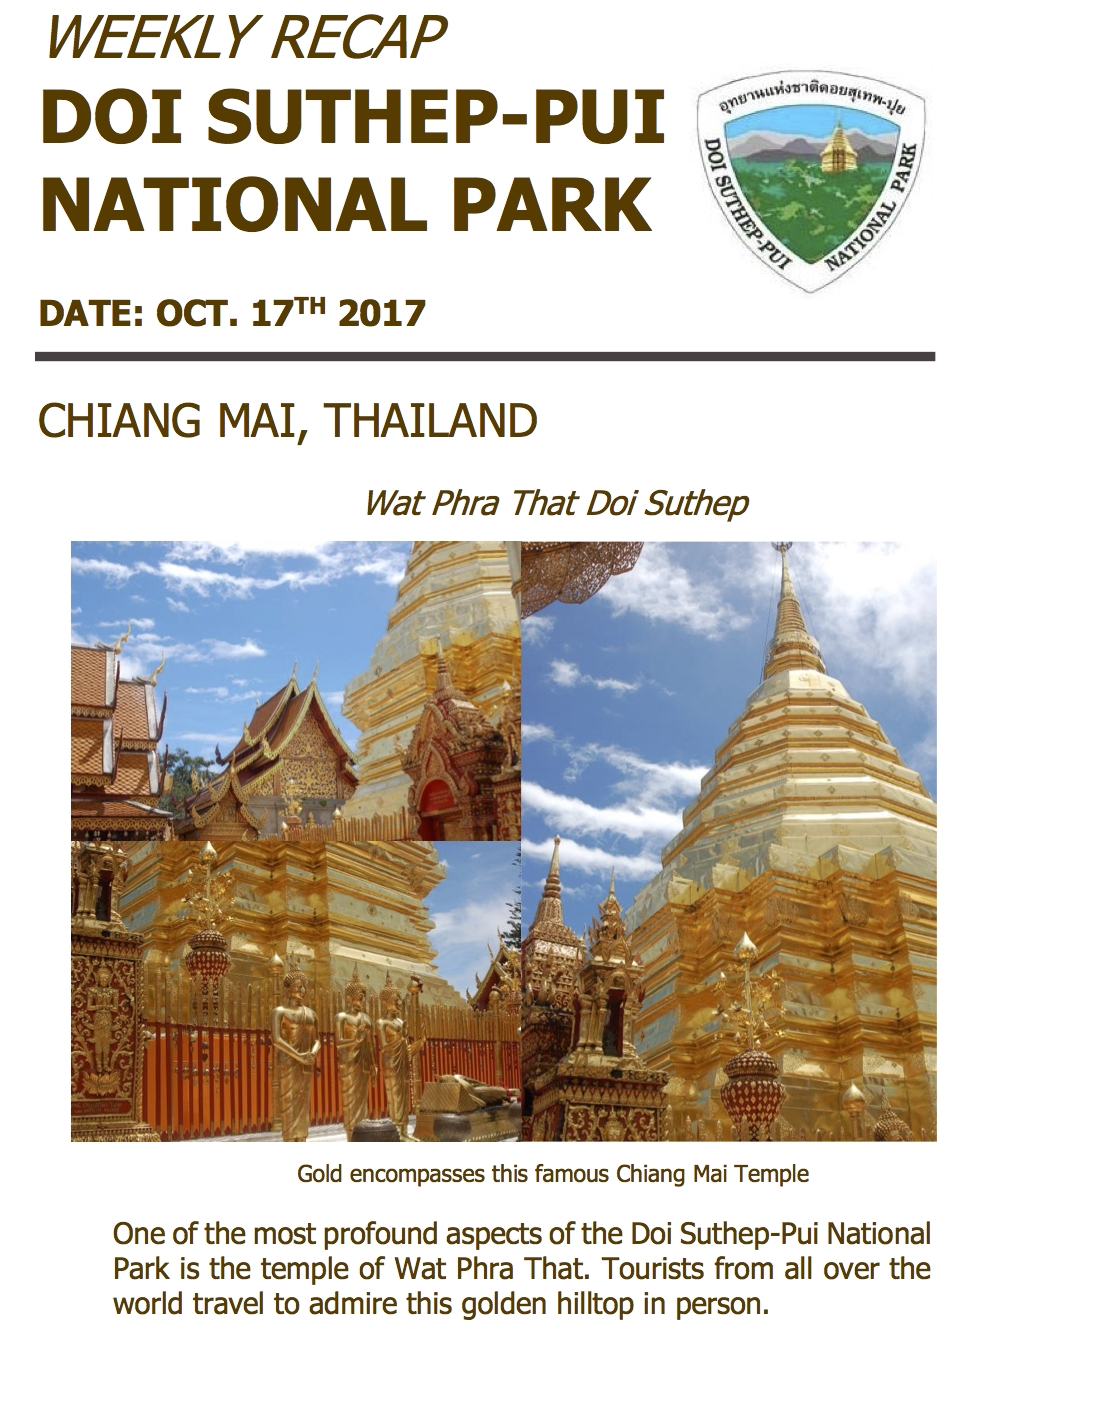 #4 Weekly Recap of Doi Suthep.jpg